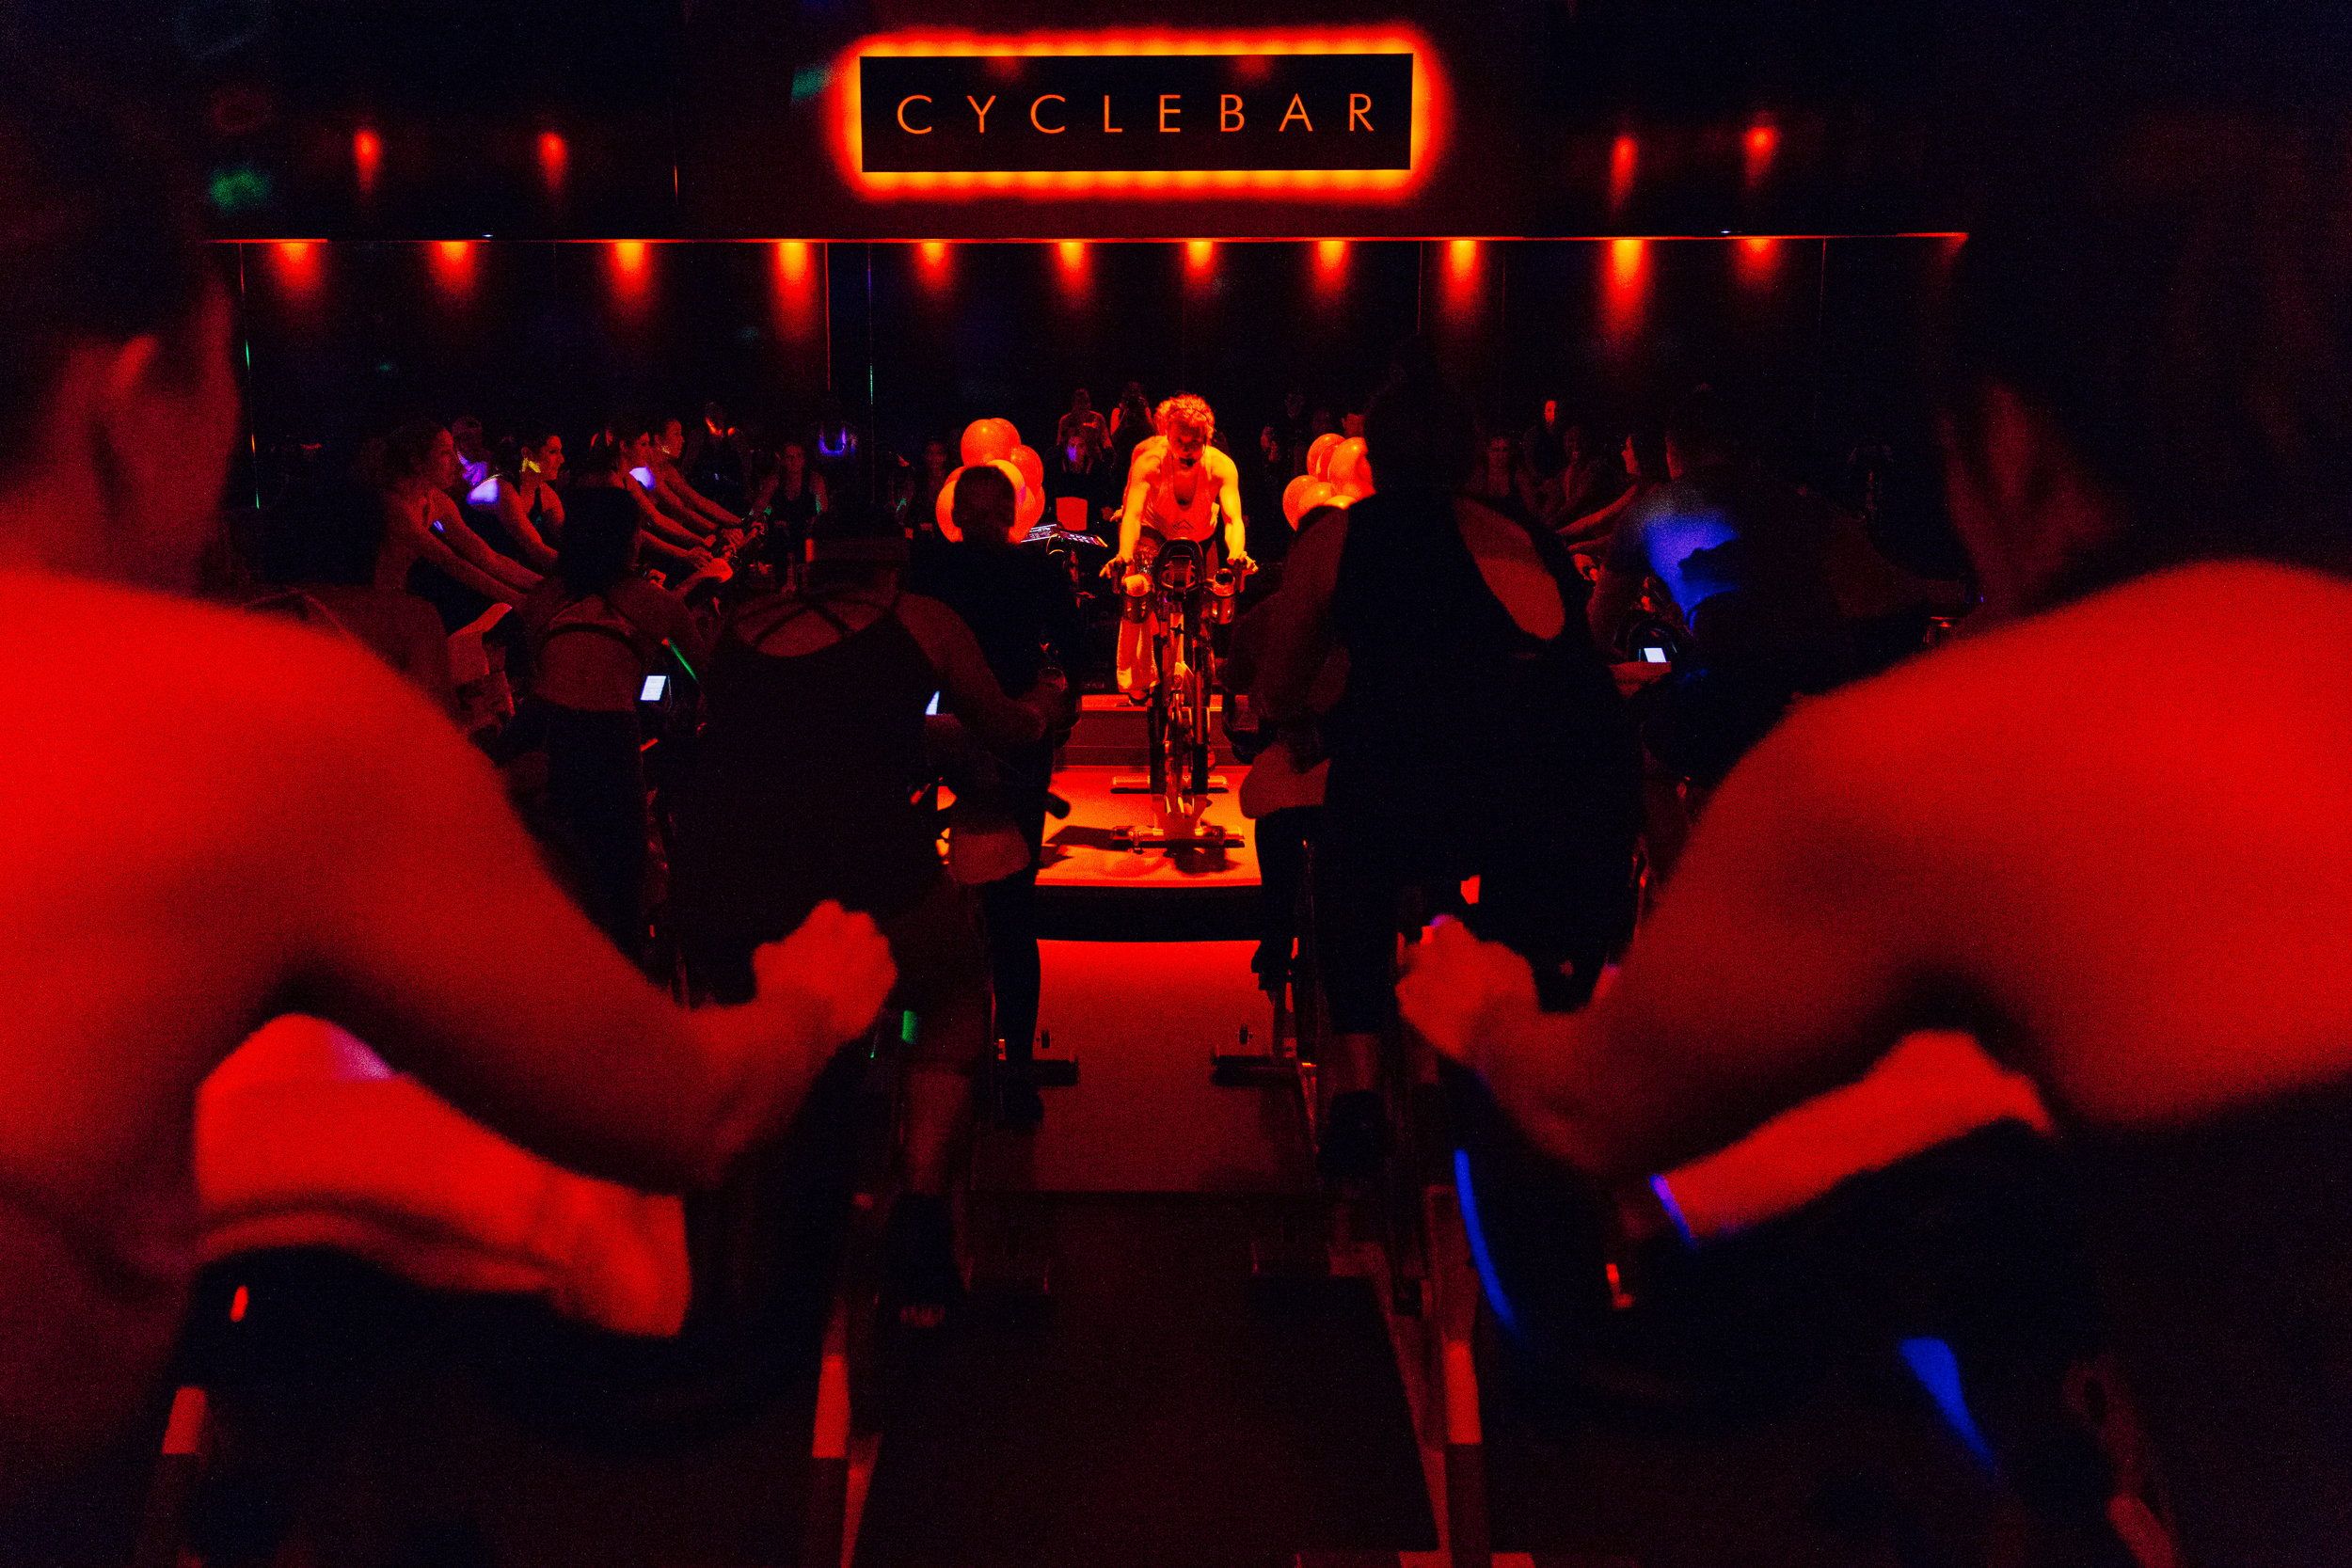 Kirby-Gladstein-CycleBar-Sawyer-Heights-Influencer-Night-2017-2019.jpg